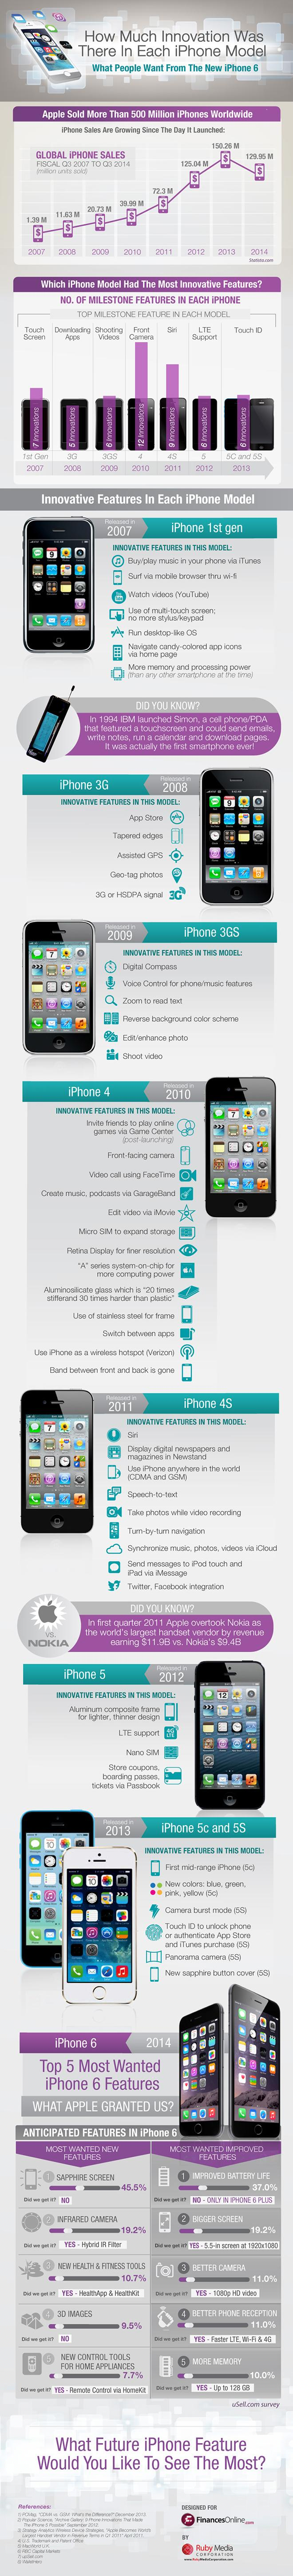 Comparison Of iPhone 6 Innovative Features